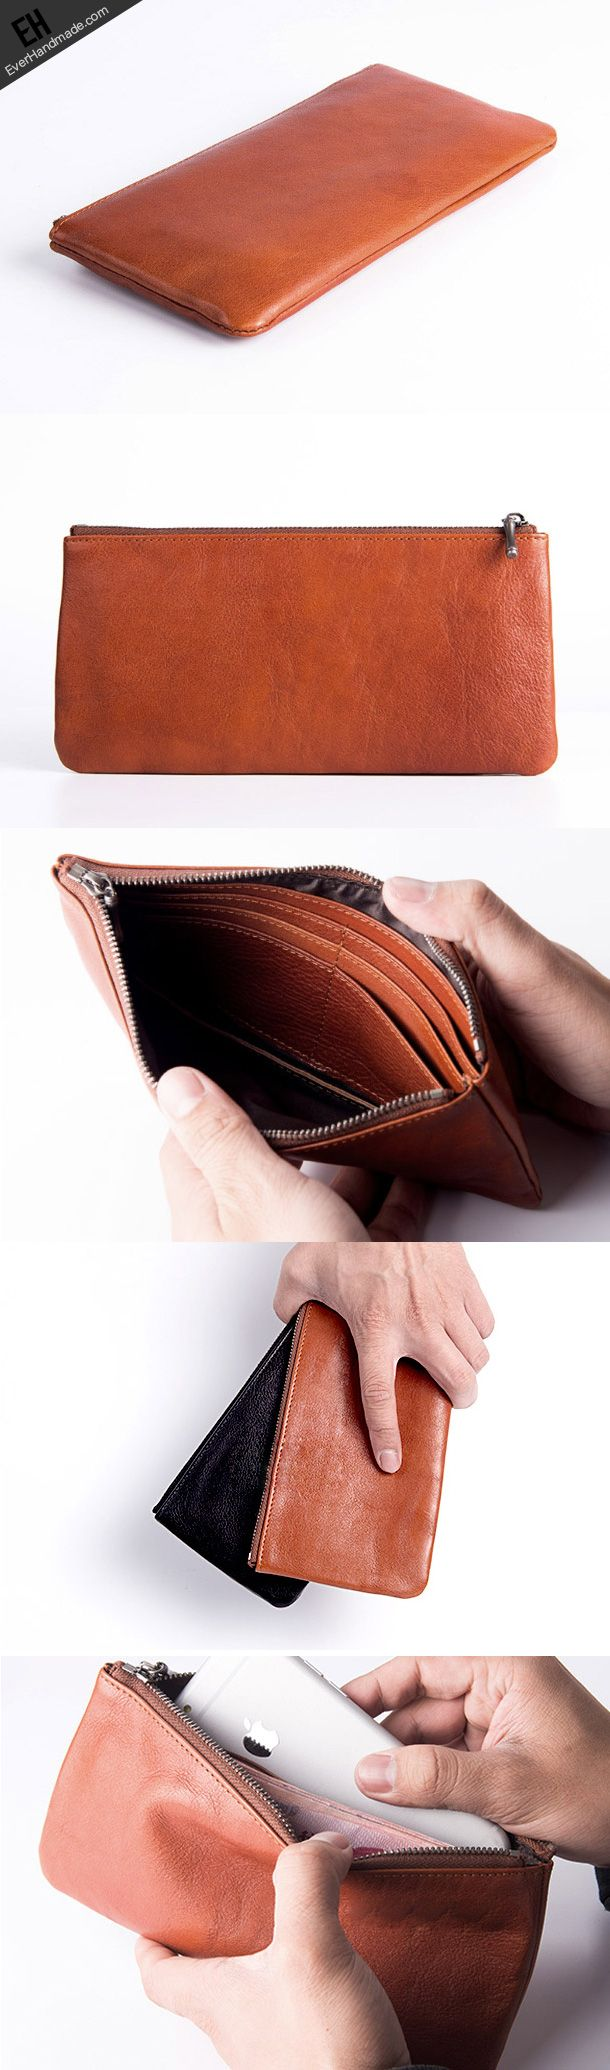 Handmade long wallet leather men phone zip clutch vintage wallet for